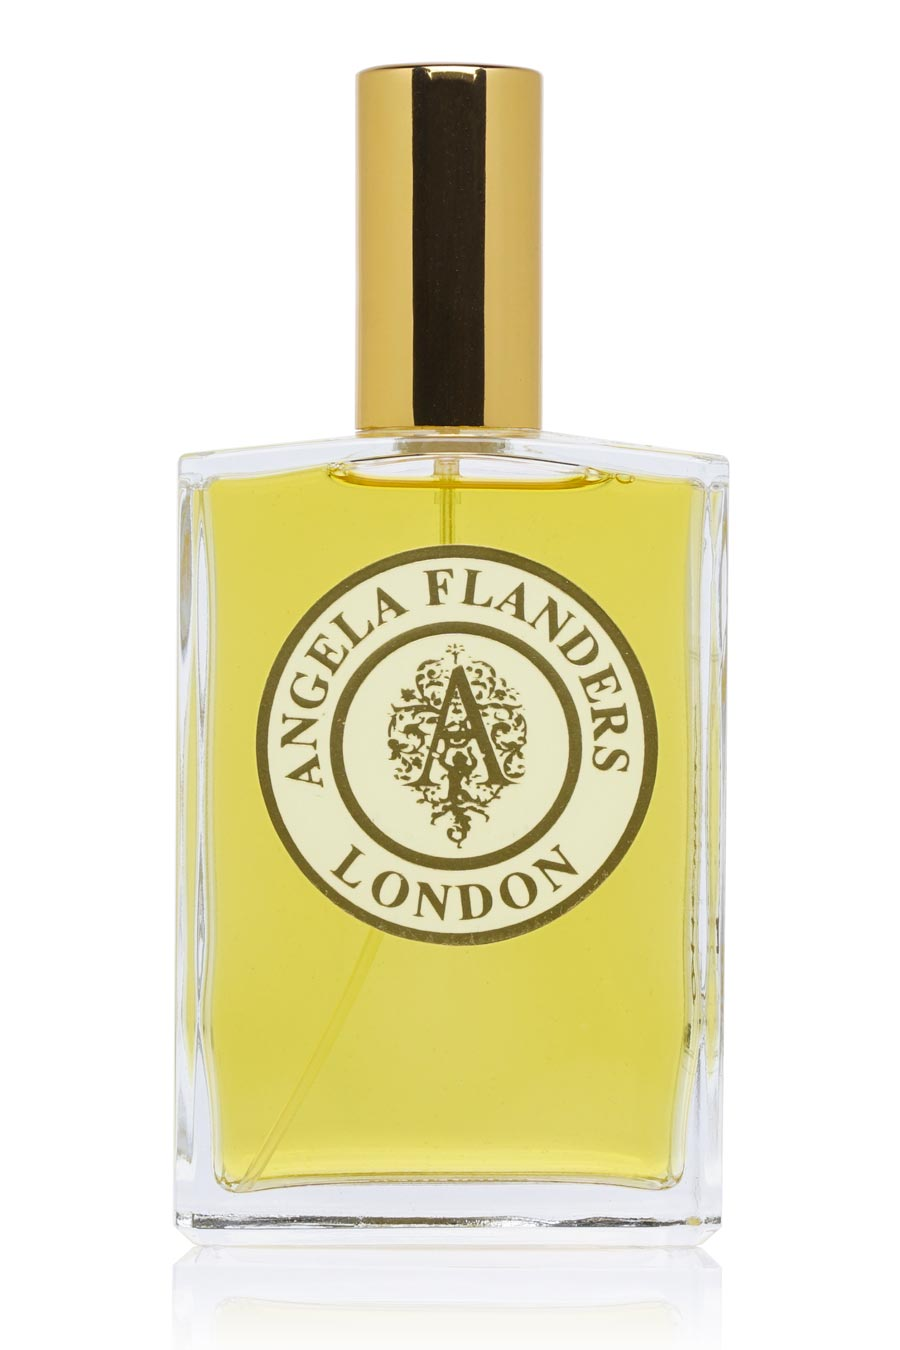 Angela Flanders Earl Grey Eau de Toilette 100ml